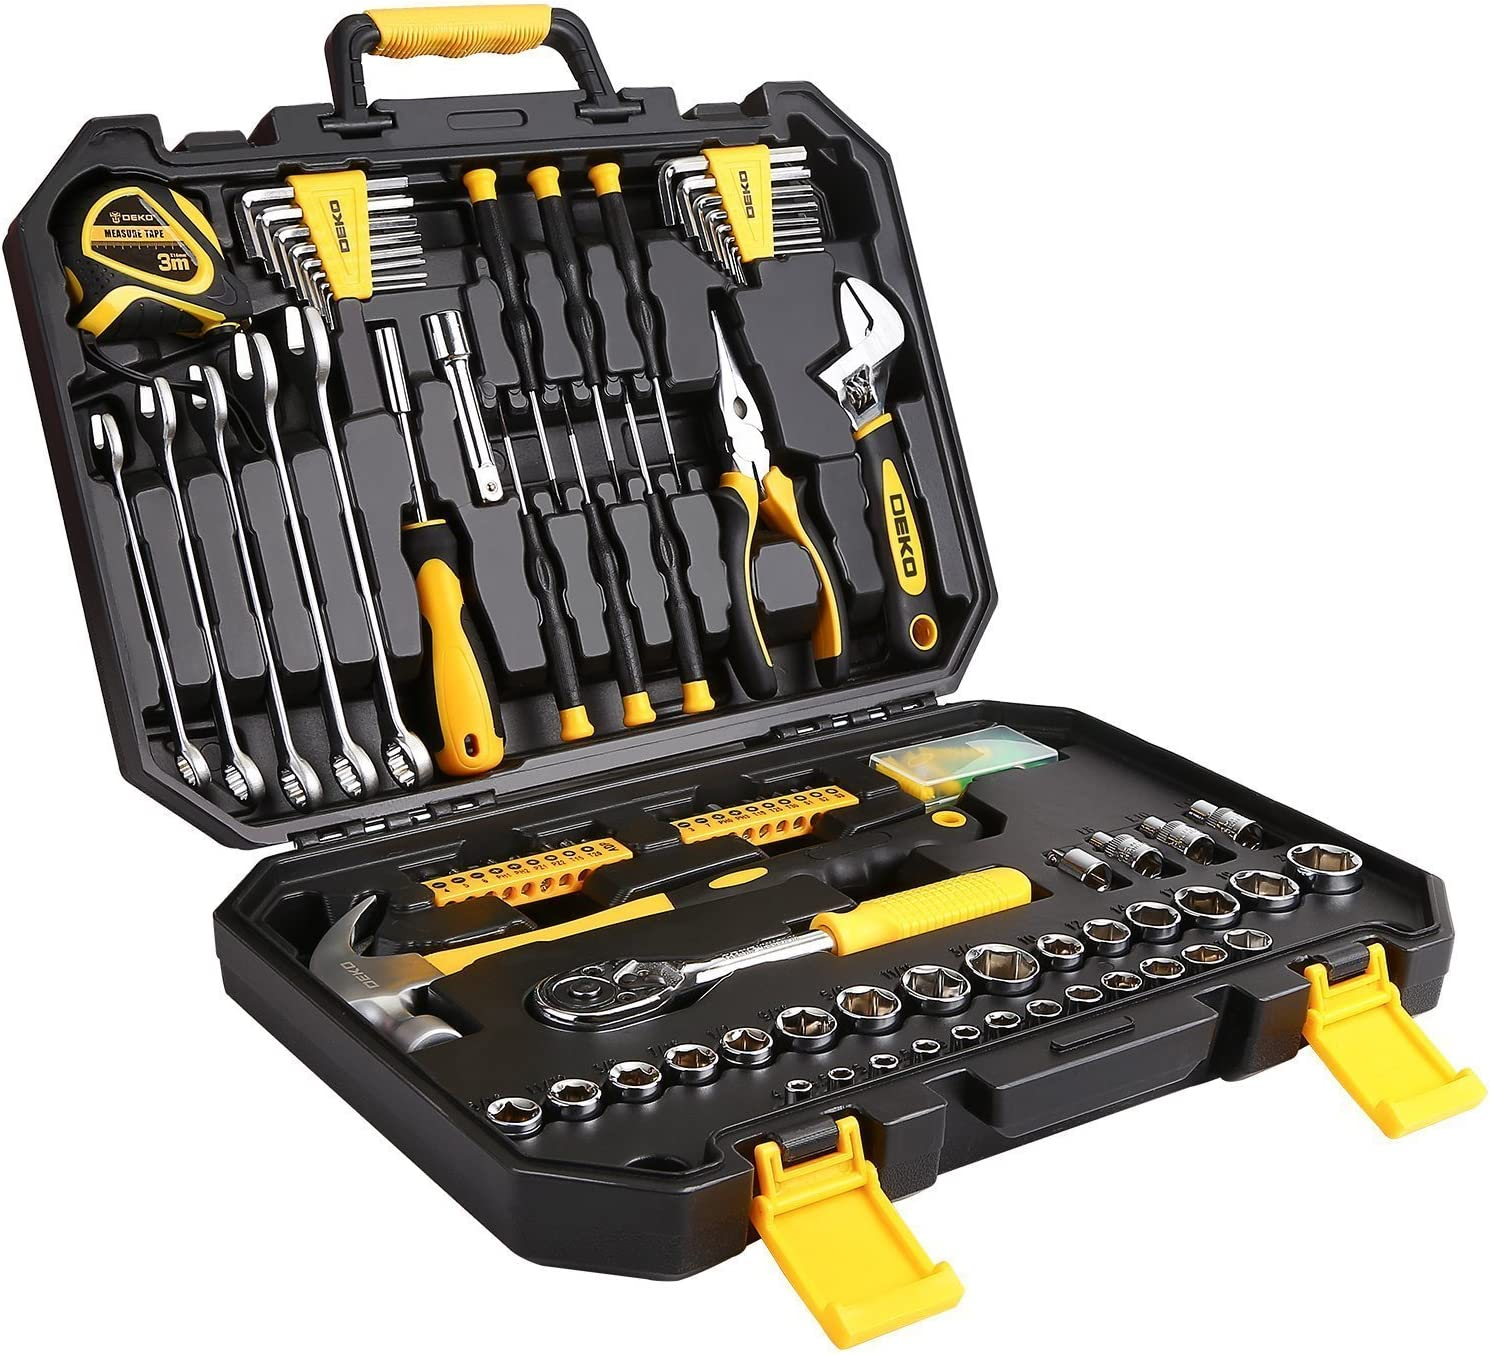 DEKOPRO 128 Piece Tool Set-General Household Hand Tool KitS, Plastic Toolbox Storage Case with Auto Repair Tool Set